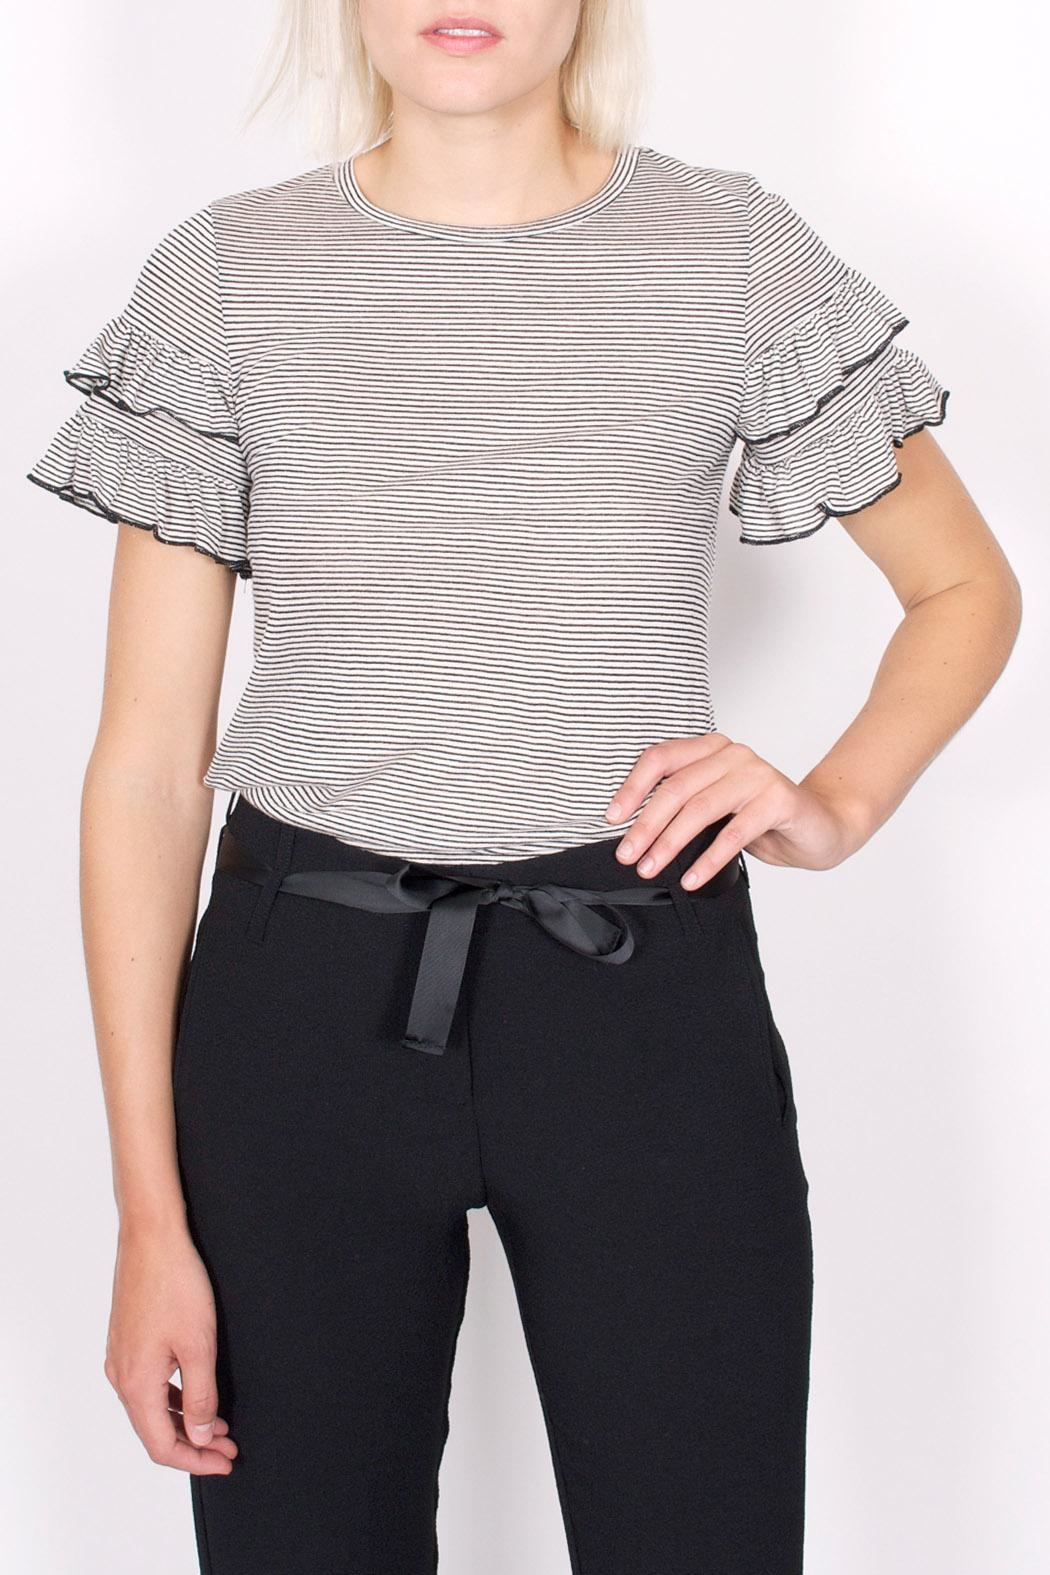 NYTT Ruffle Striped Tee - Front Cropped Image